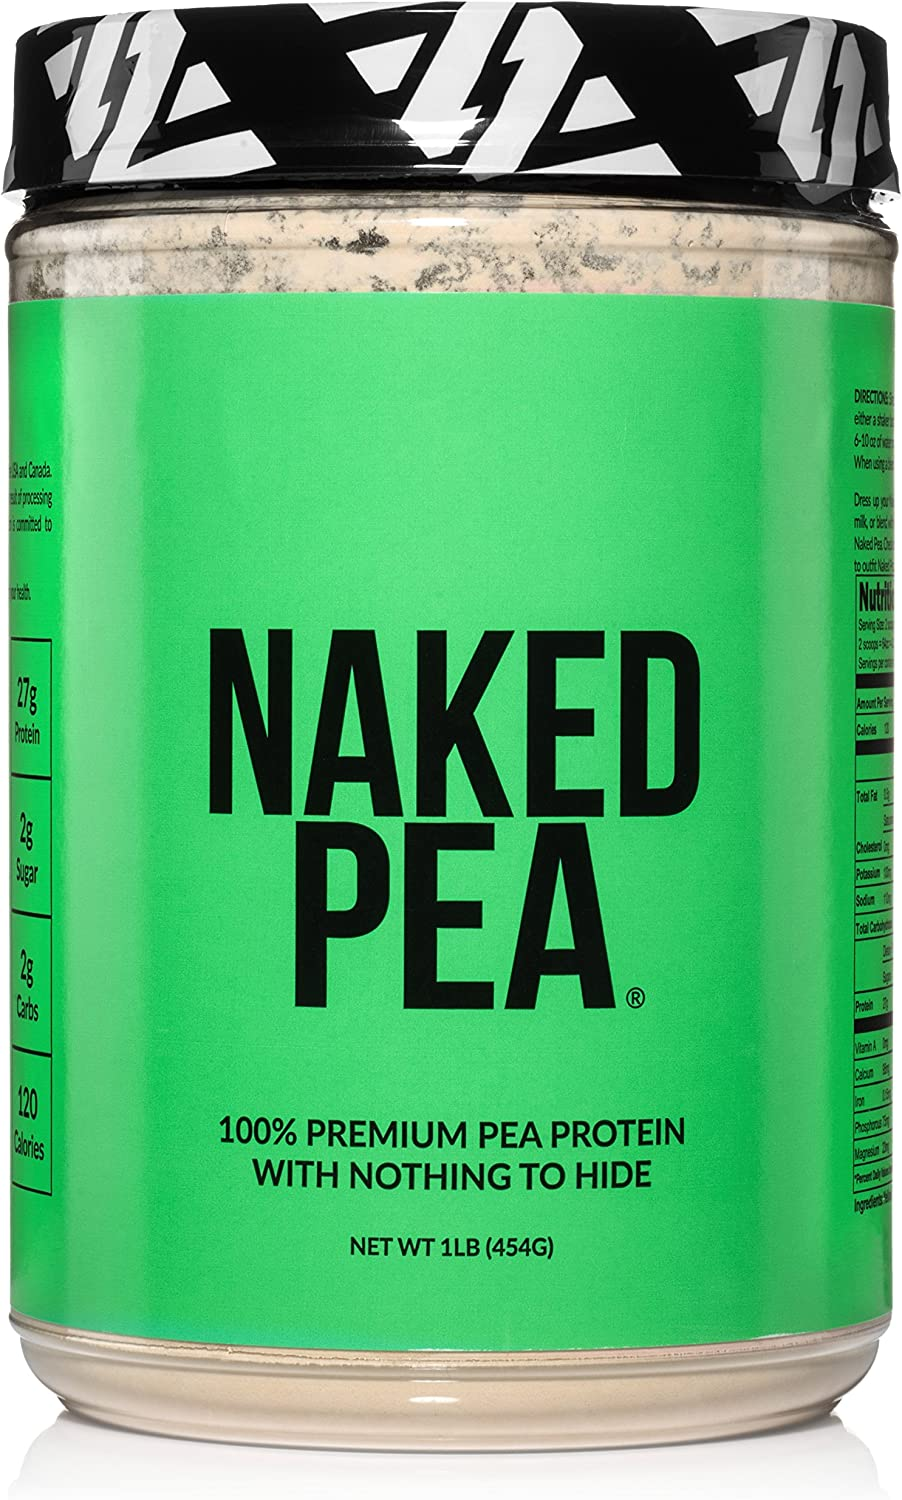 Naked Pea 1LB Ranking TOP19 Protein Ranking TOP8 Isolate from Pl North - American Farms